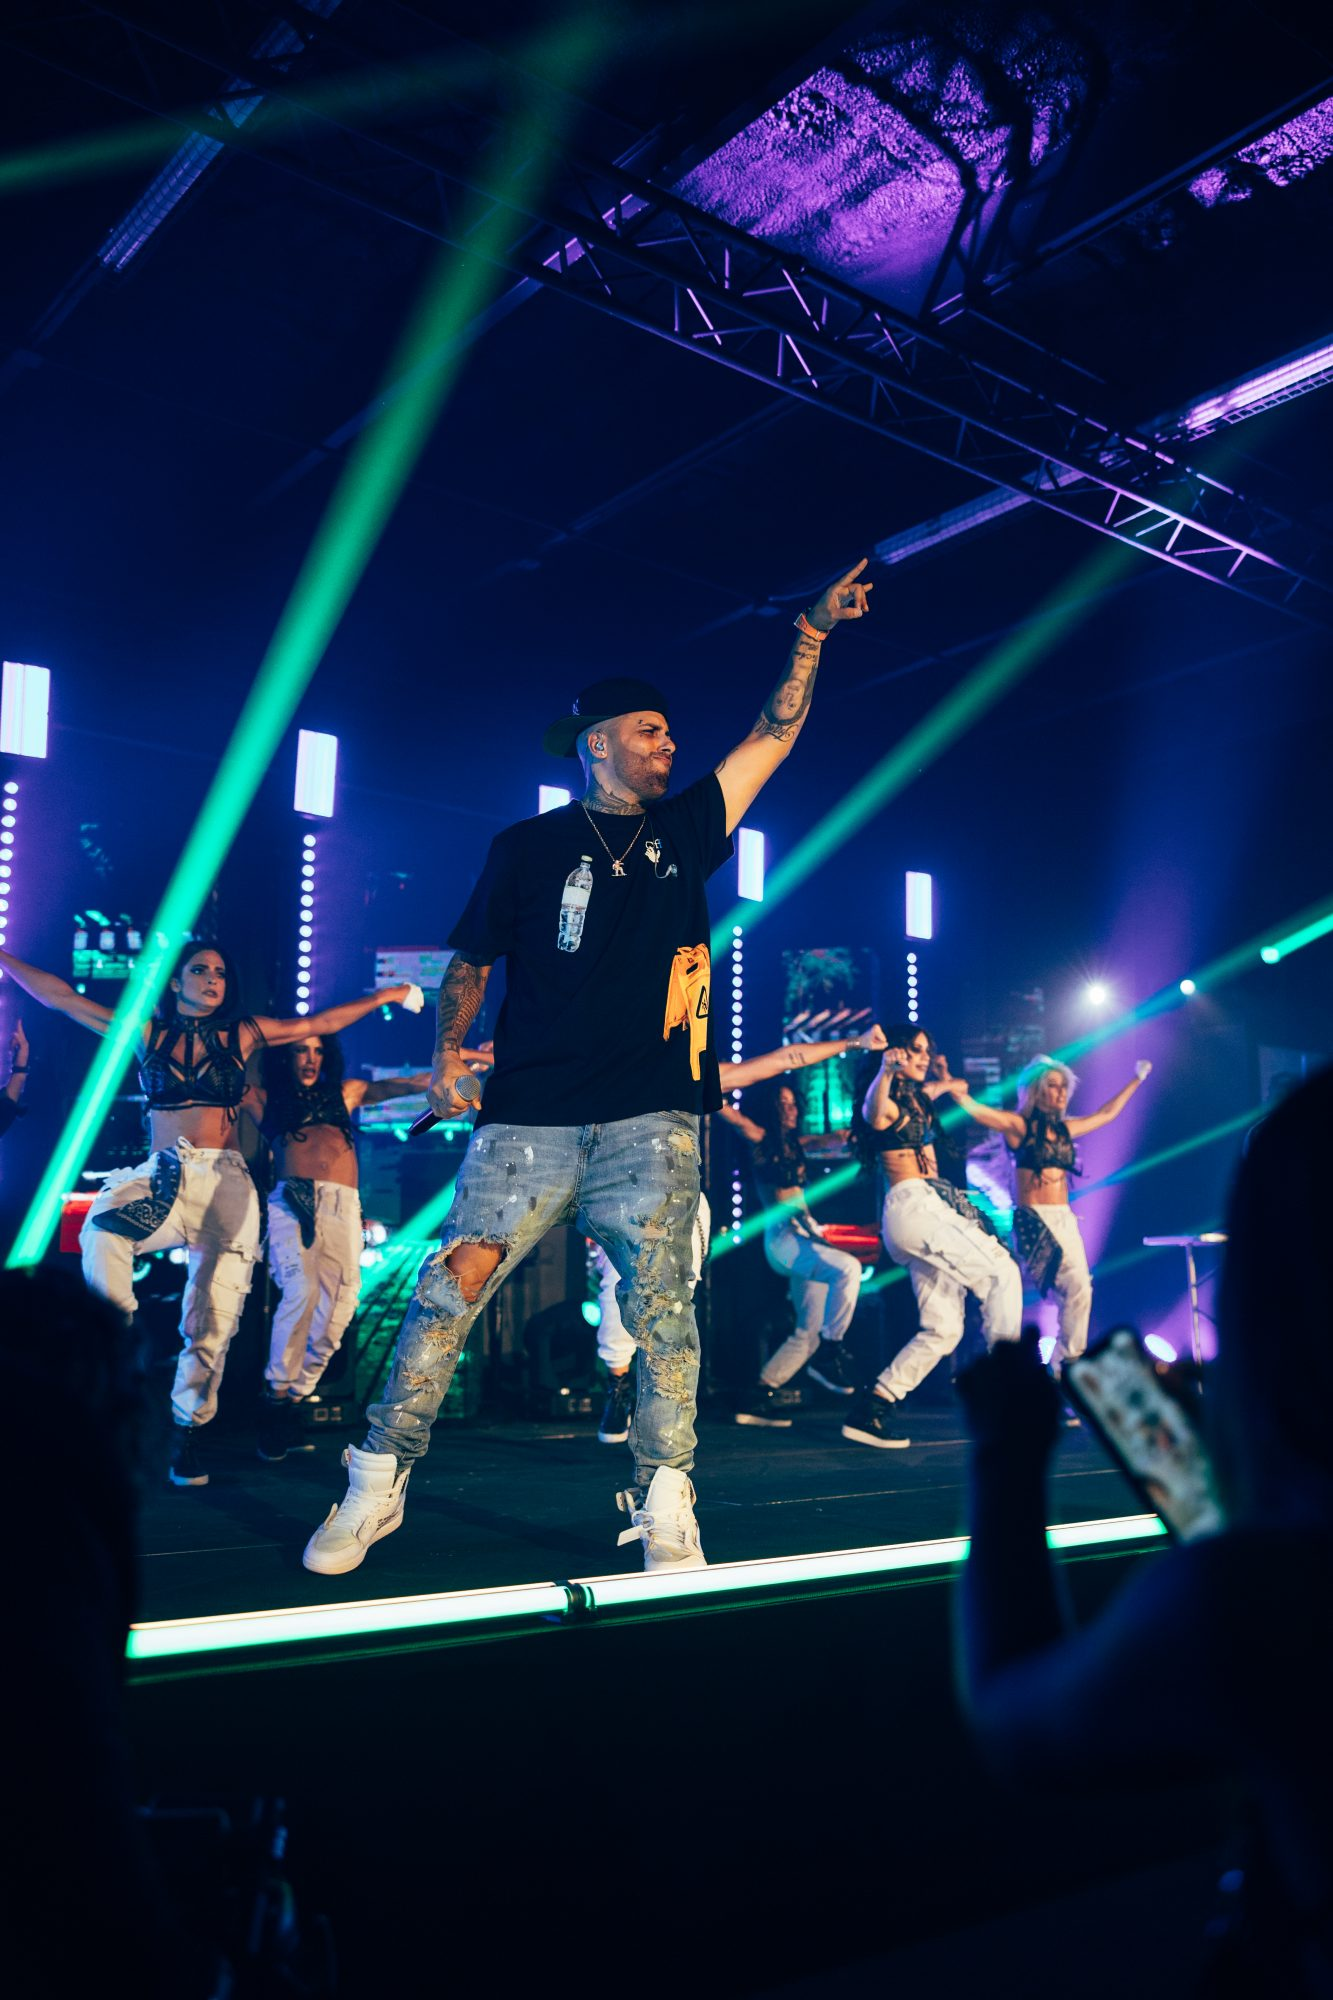 Nicky Jam performing a virtual concert at Bardot Live in Miami, Fla., streamed live with GlobalStreamNow